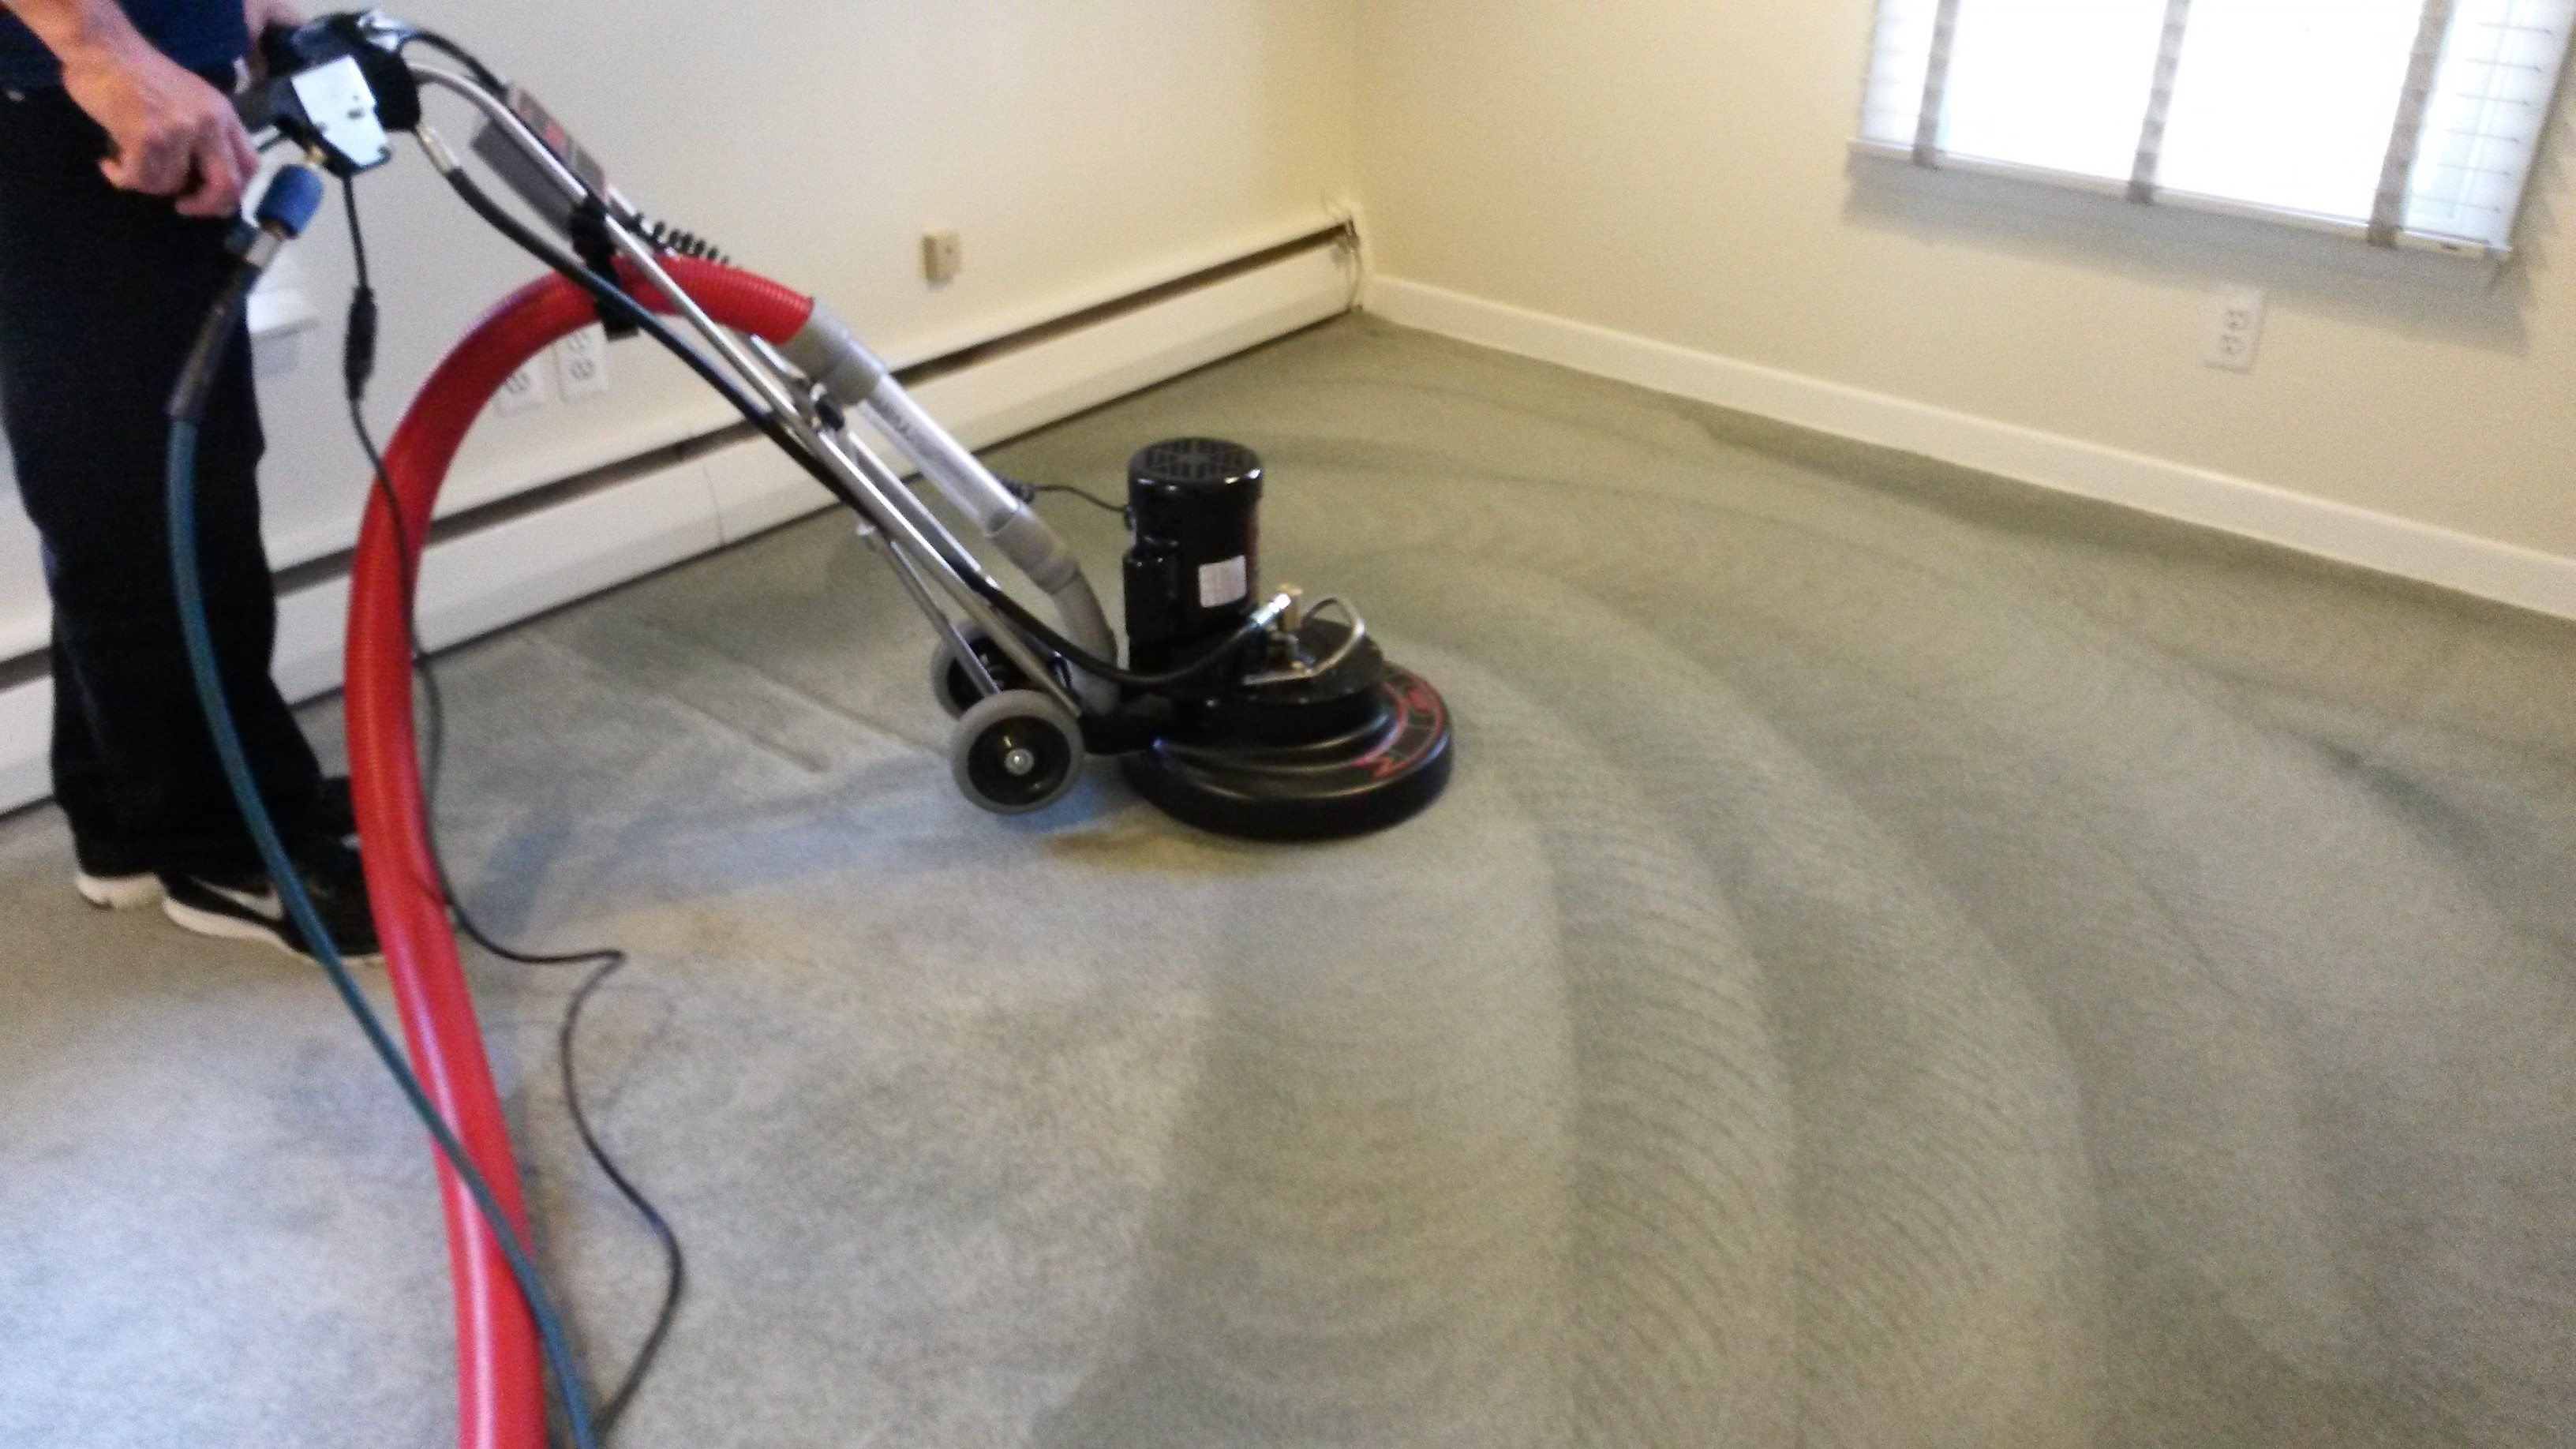 Carpet Cleaning Carpet Cleaning Services Ibx Services